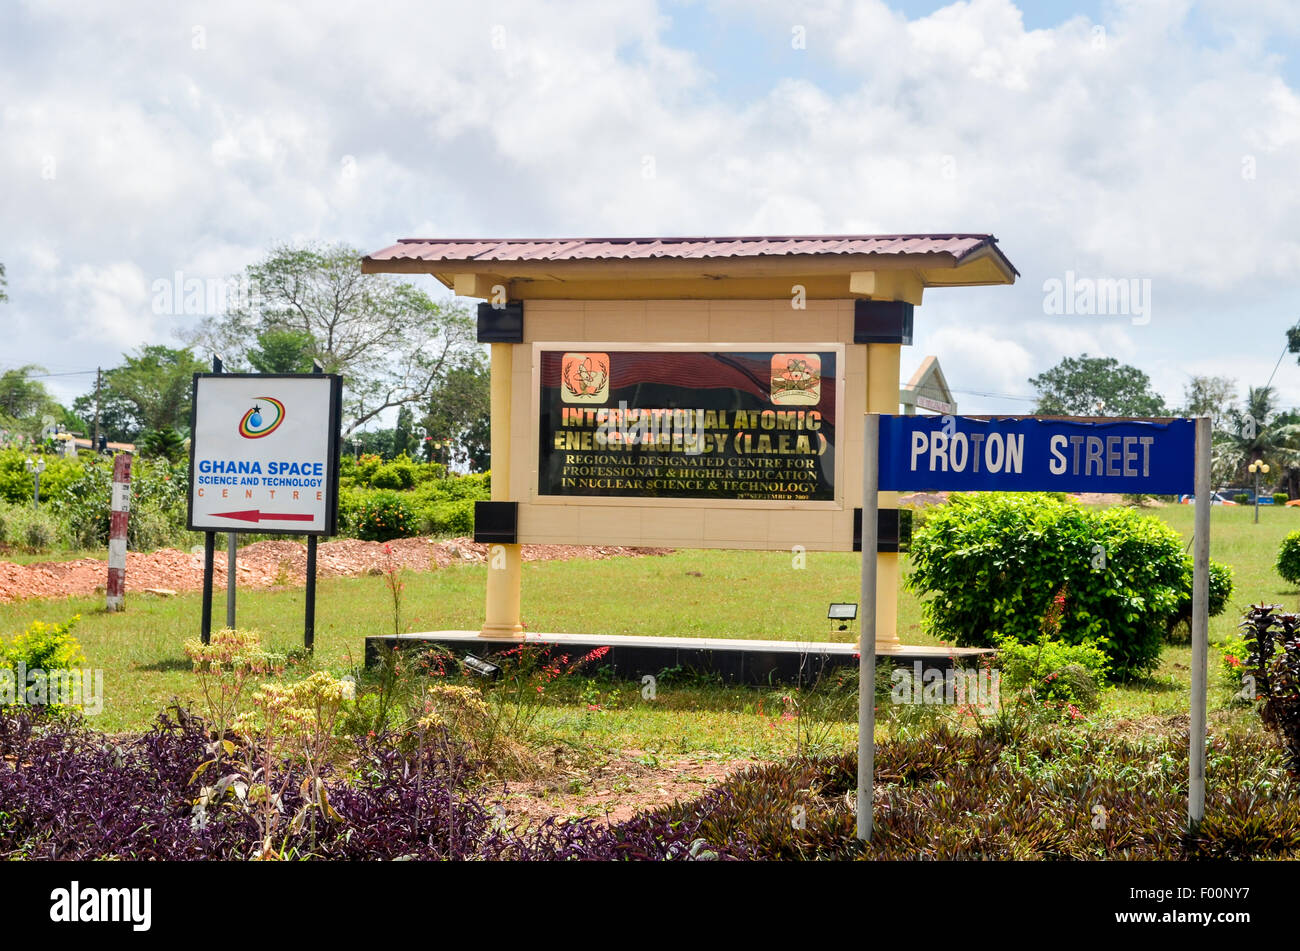 Ghana Space Science and Technology Centre and the International Atomic Energy Agency (IALA) on Proton street in - Stock Image